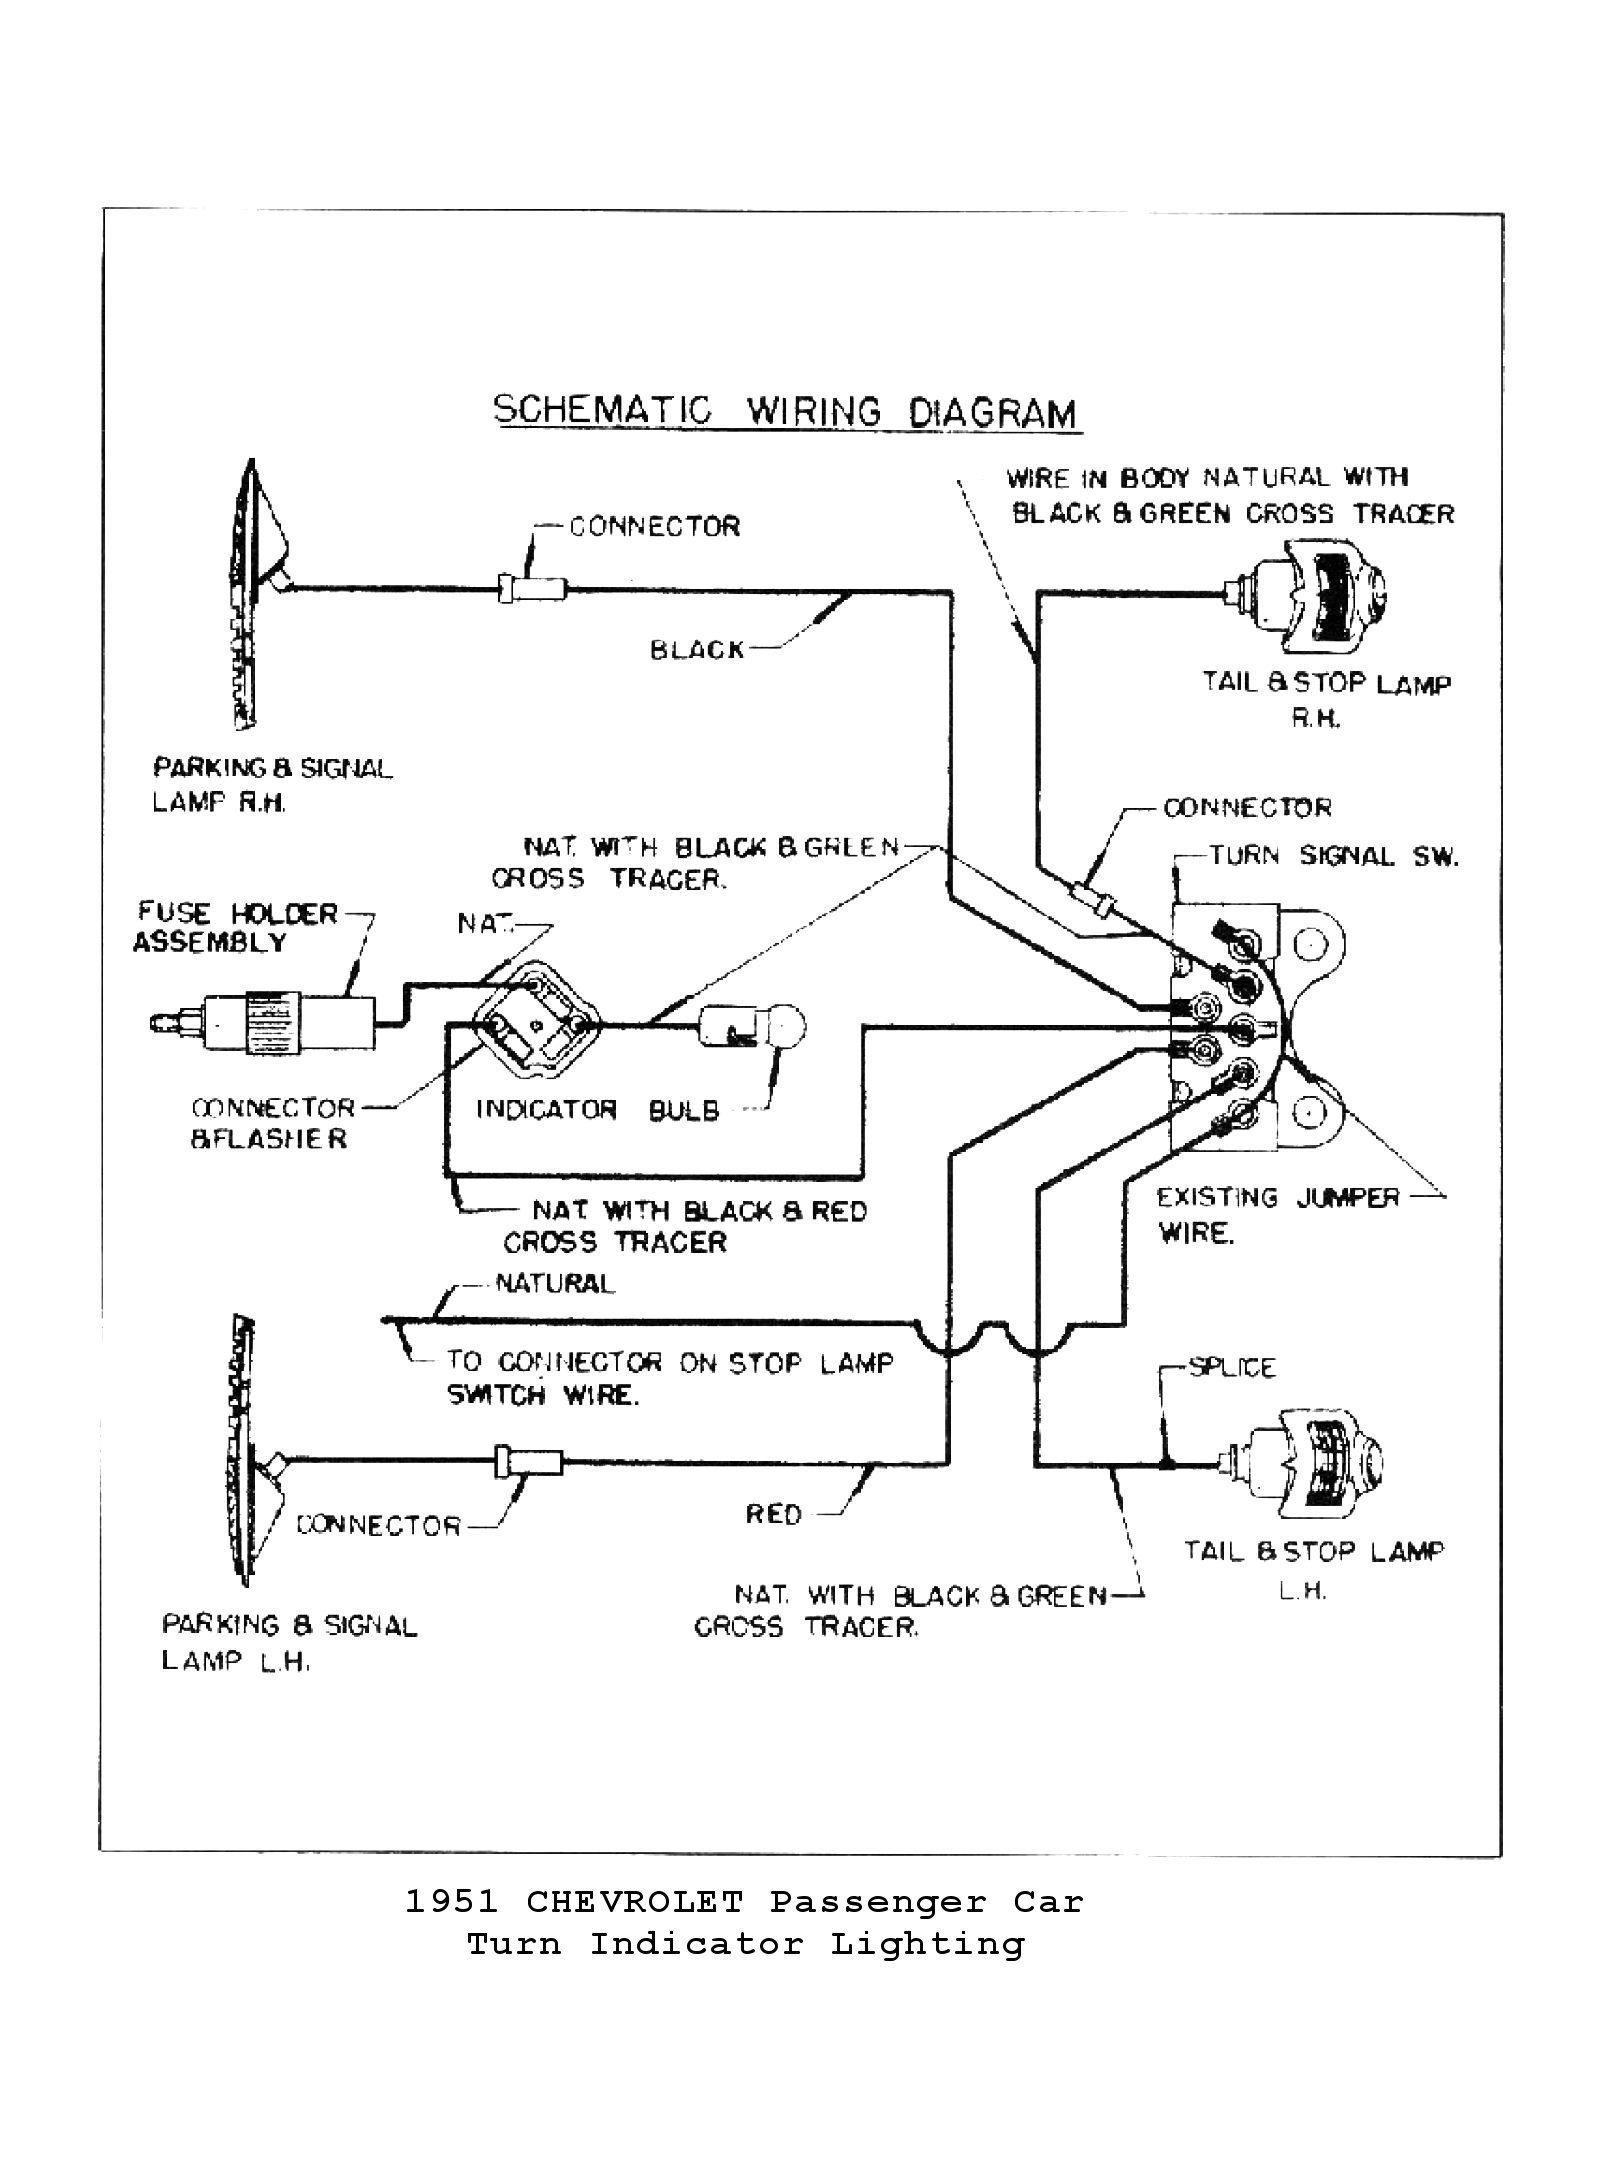 Gm Turn Signal Wiring Schematics List Of Schematic Circuit Diagram Epiphone Special Sg G310 Stat 242 Flasher Worksheet And U2022 Rh Bookinc Co